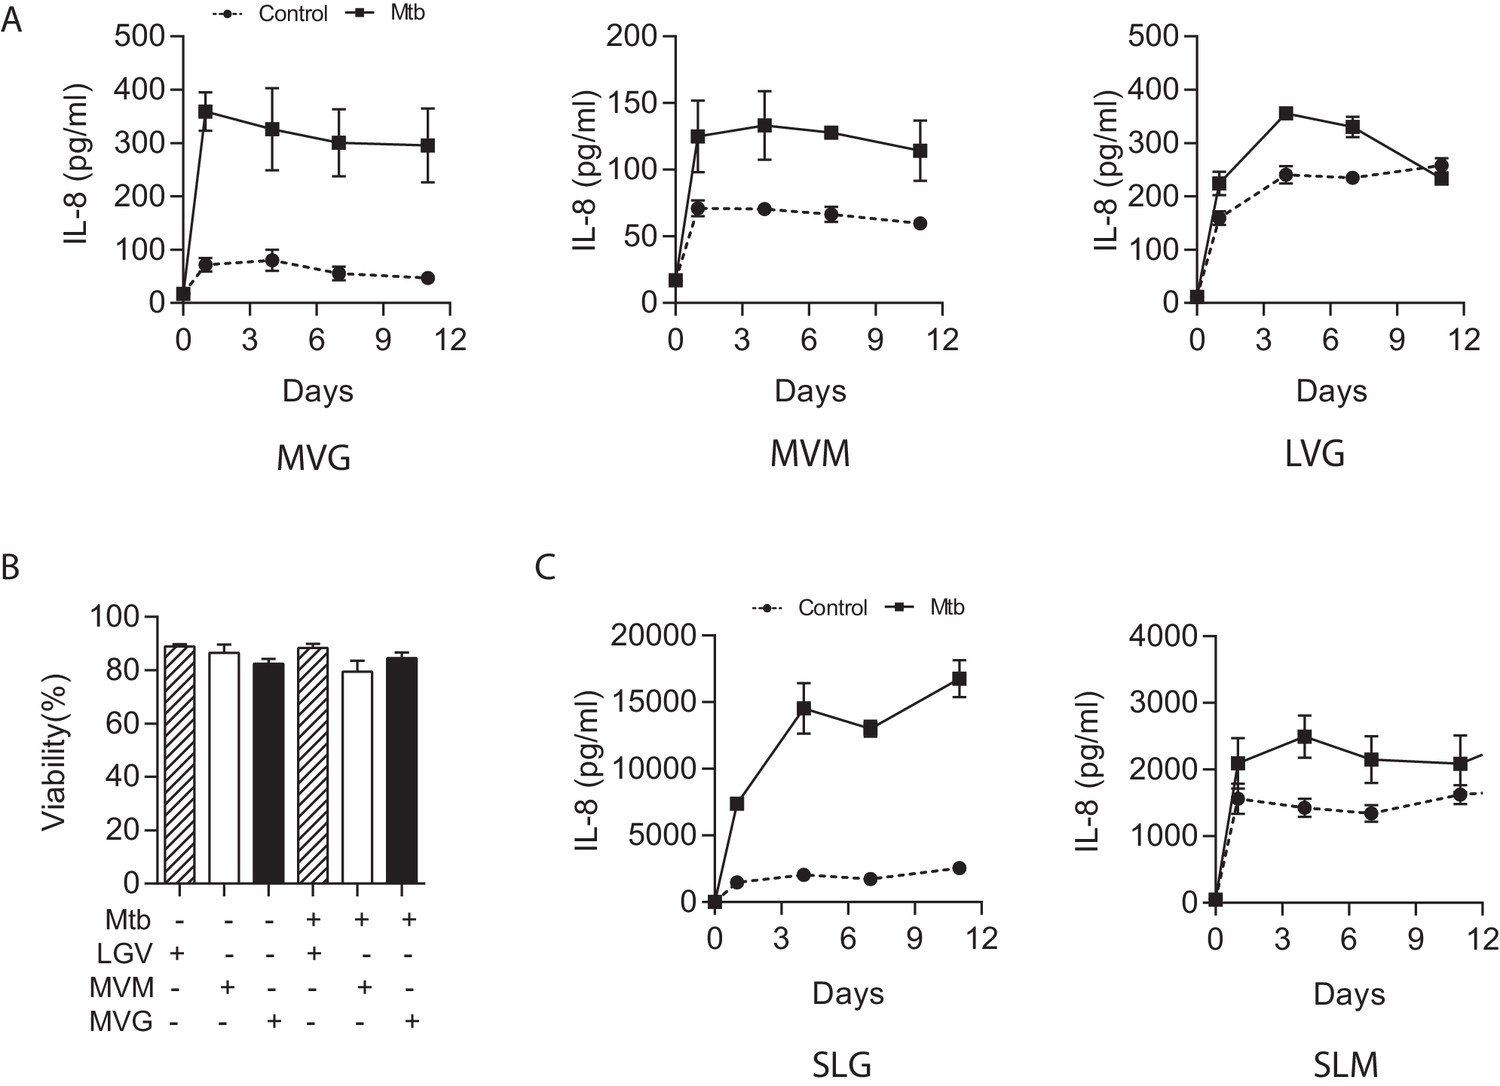 Dissection Of The Host Pathogen Interaction In Human Tuberculosis Wiring Instructions For Edward Jones Medium Viscosity Guluronate Mvg Alginate Is Optimal Immunological Studies